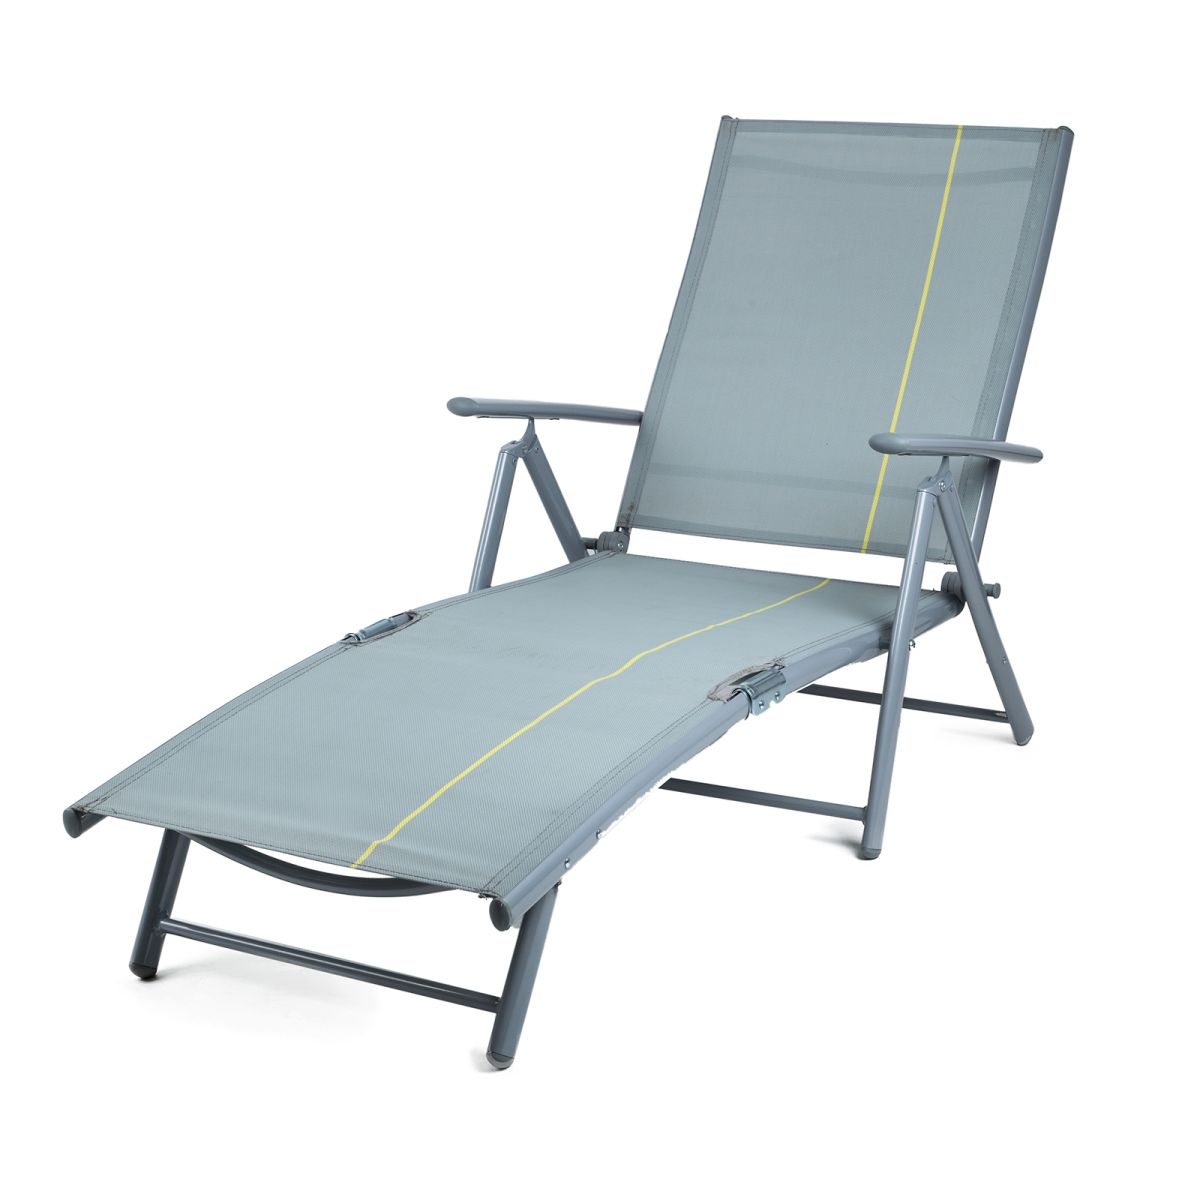 Garden sun deck chair chaise lounge relax lounger for Beach chaise lounger